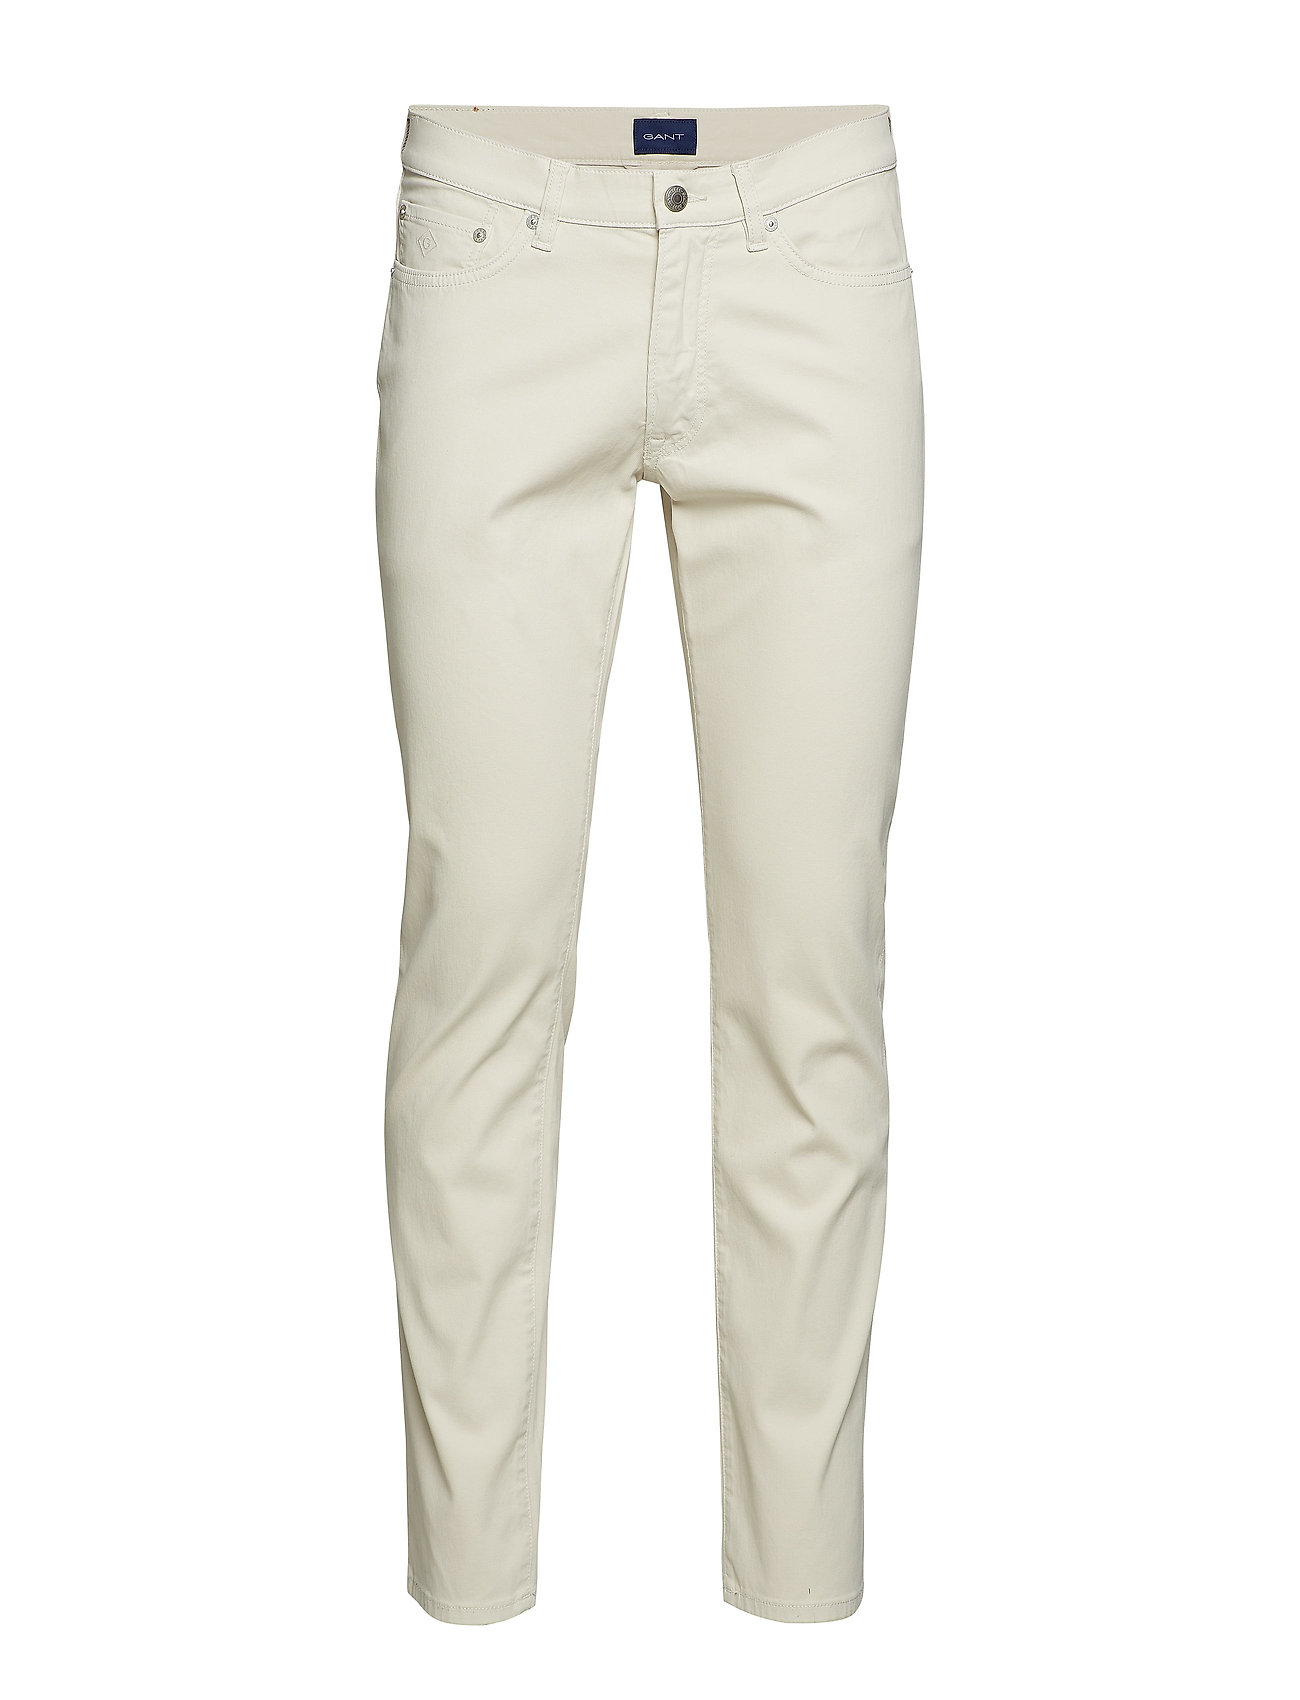 Gant D1. SLIM BEDFORD JEANS - PUTTY